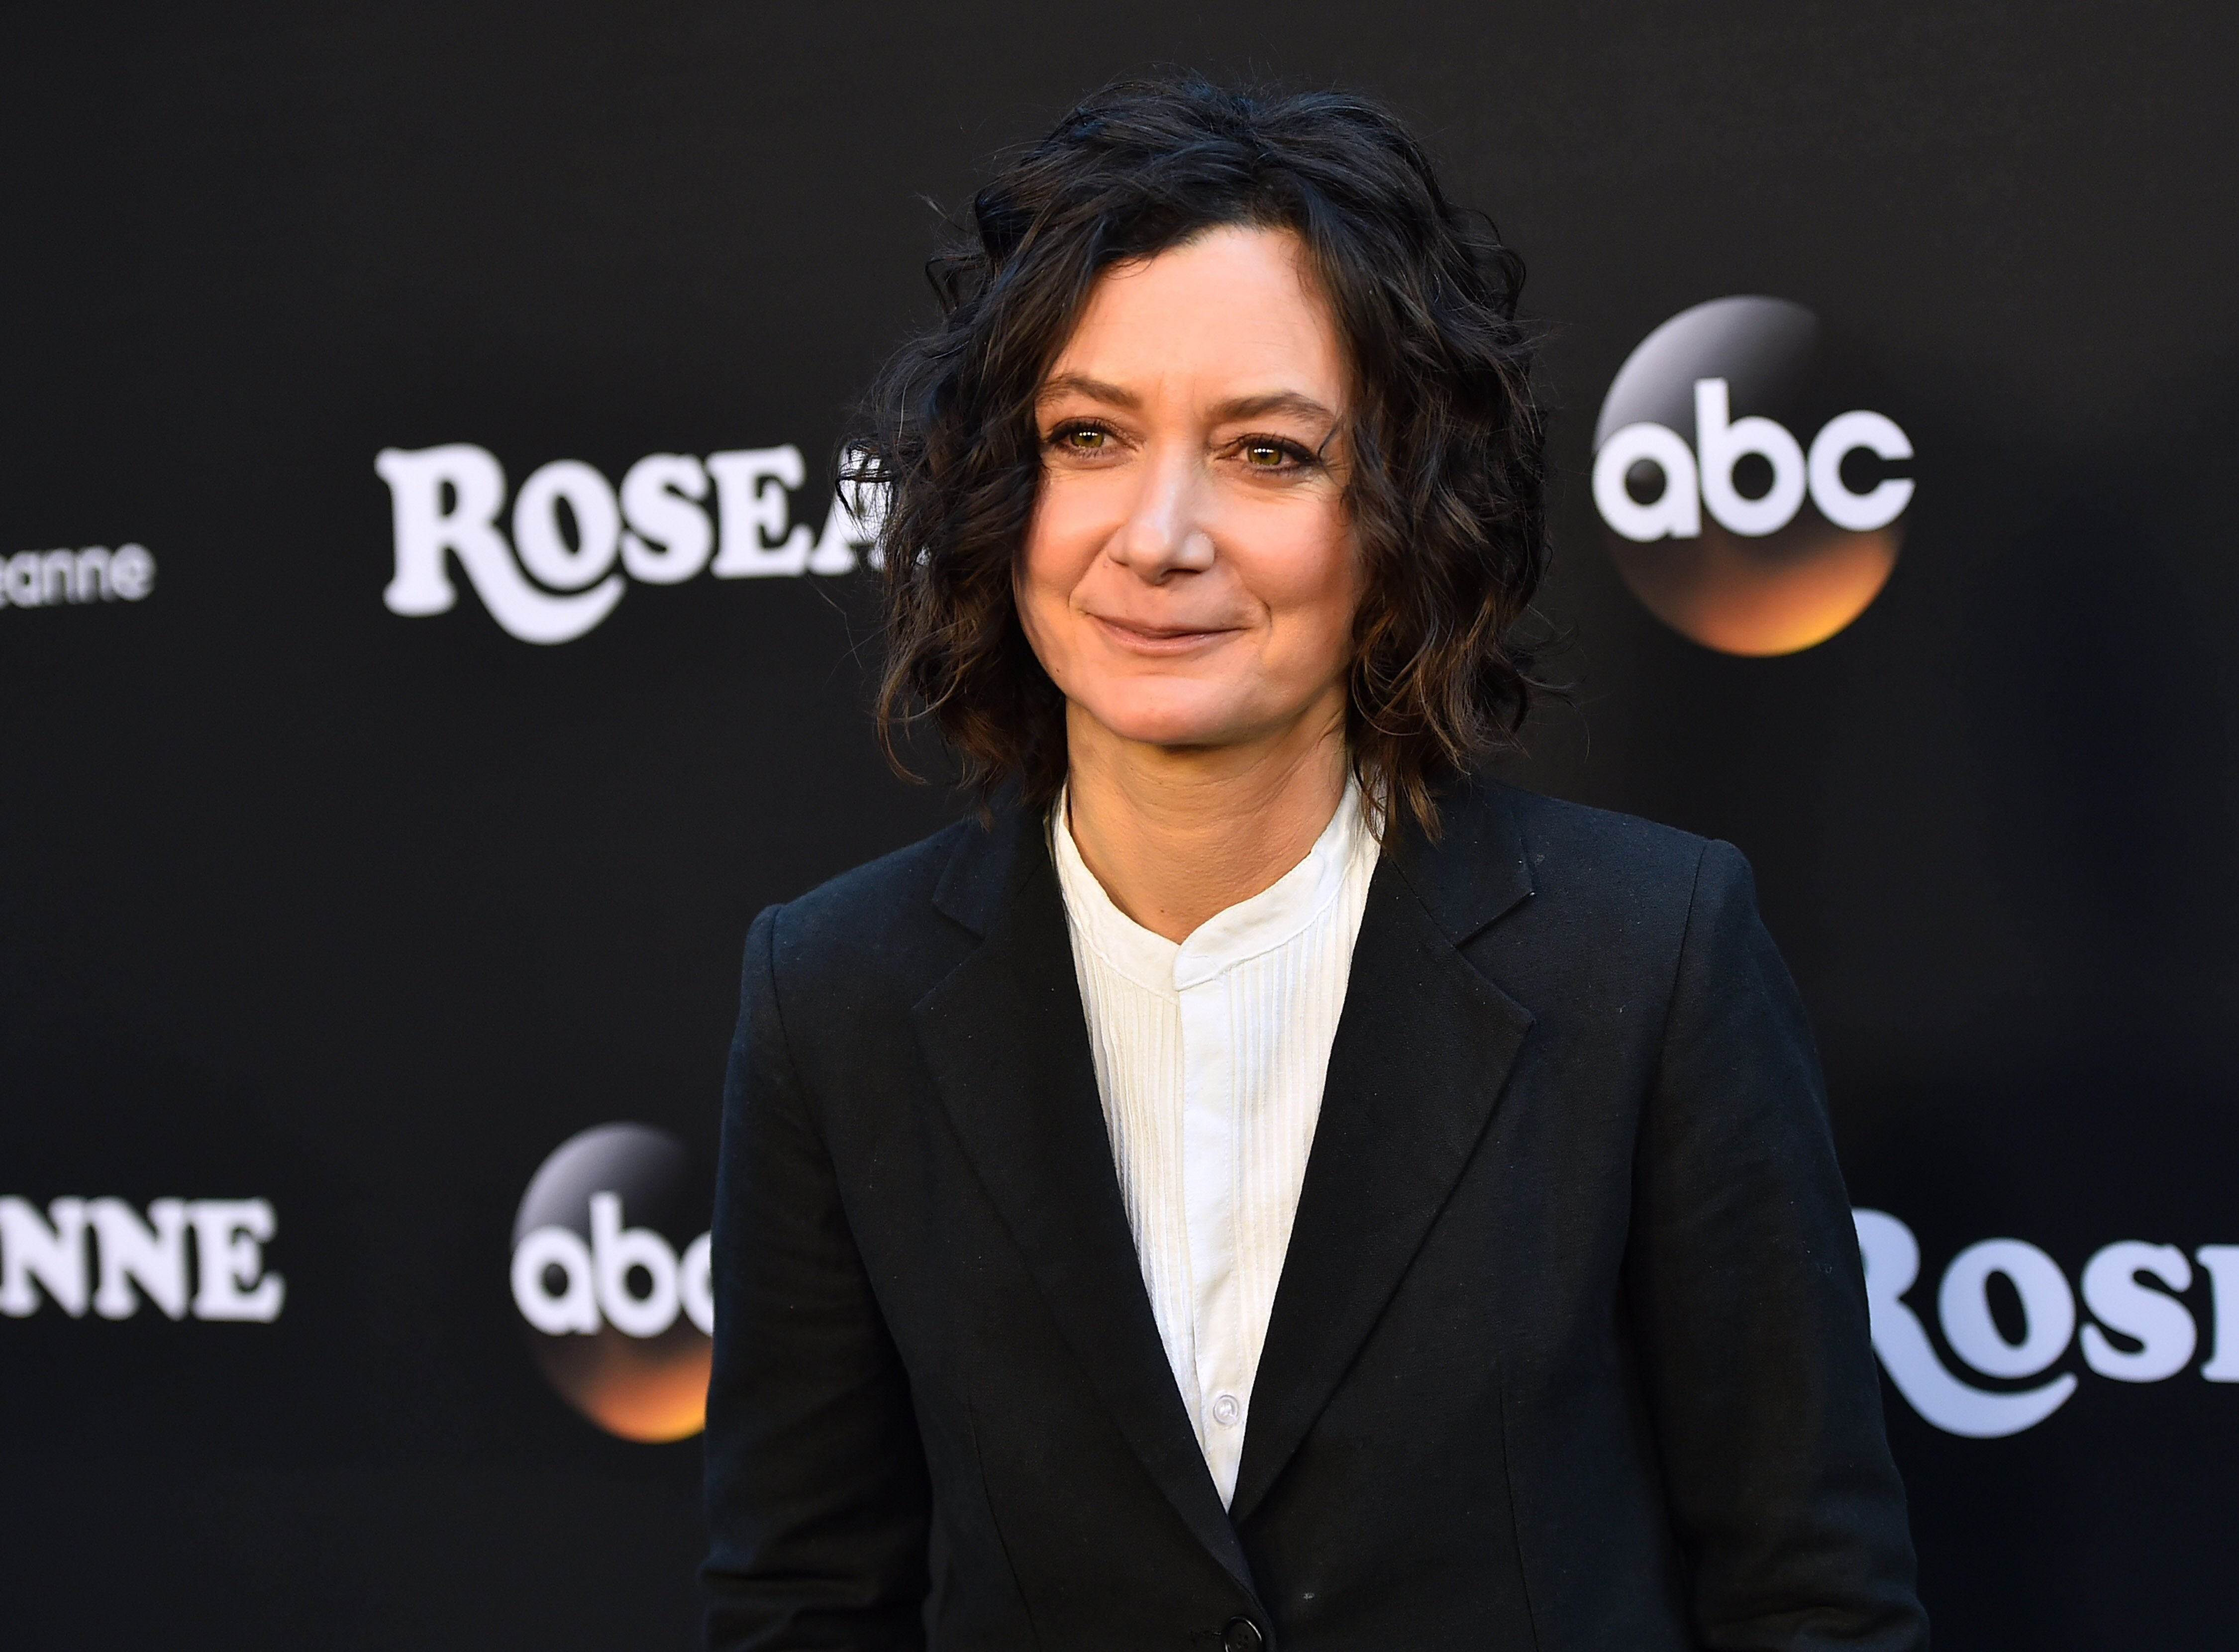 Sara Gilbert at the Roseanne event | Source: Getty Images